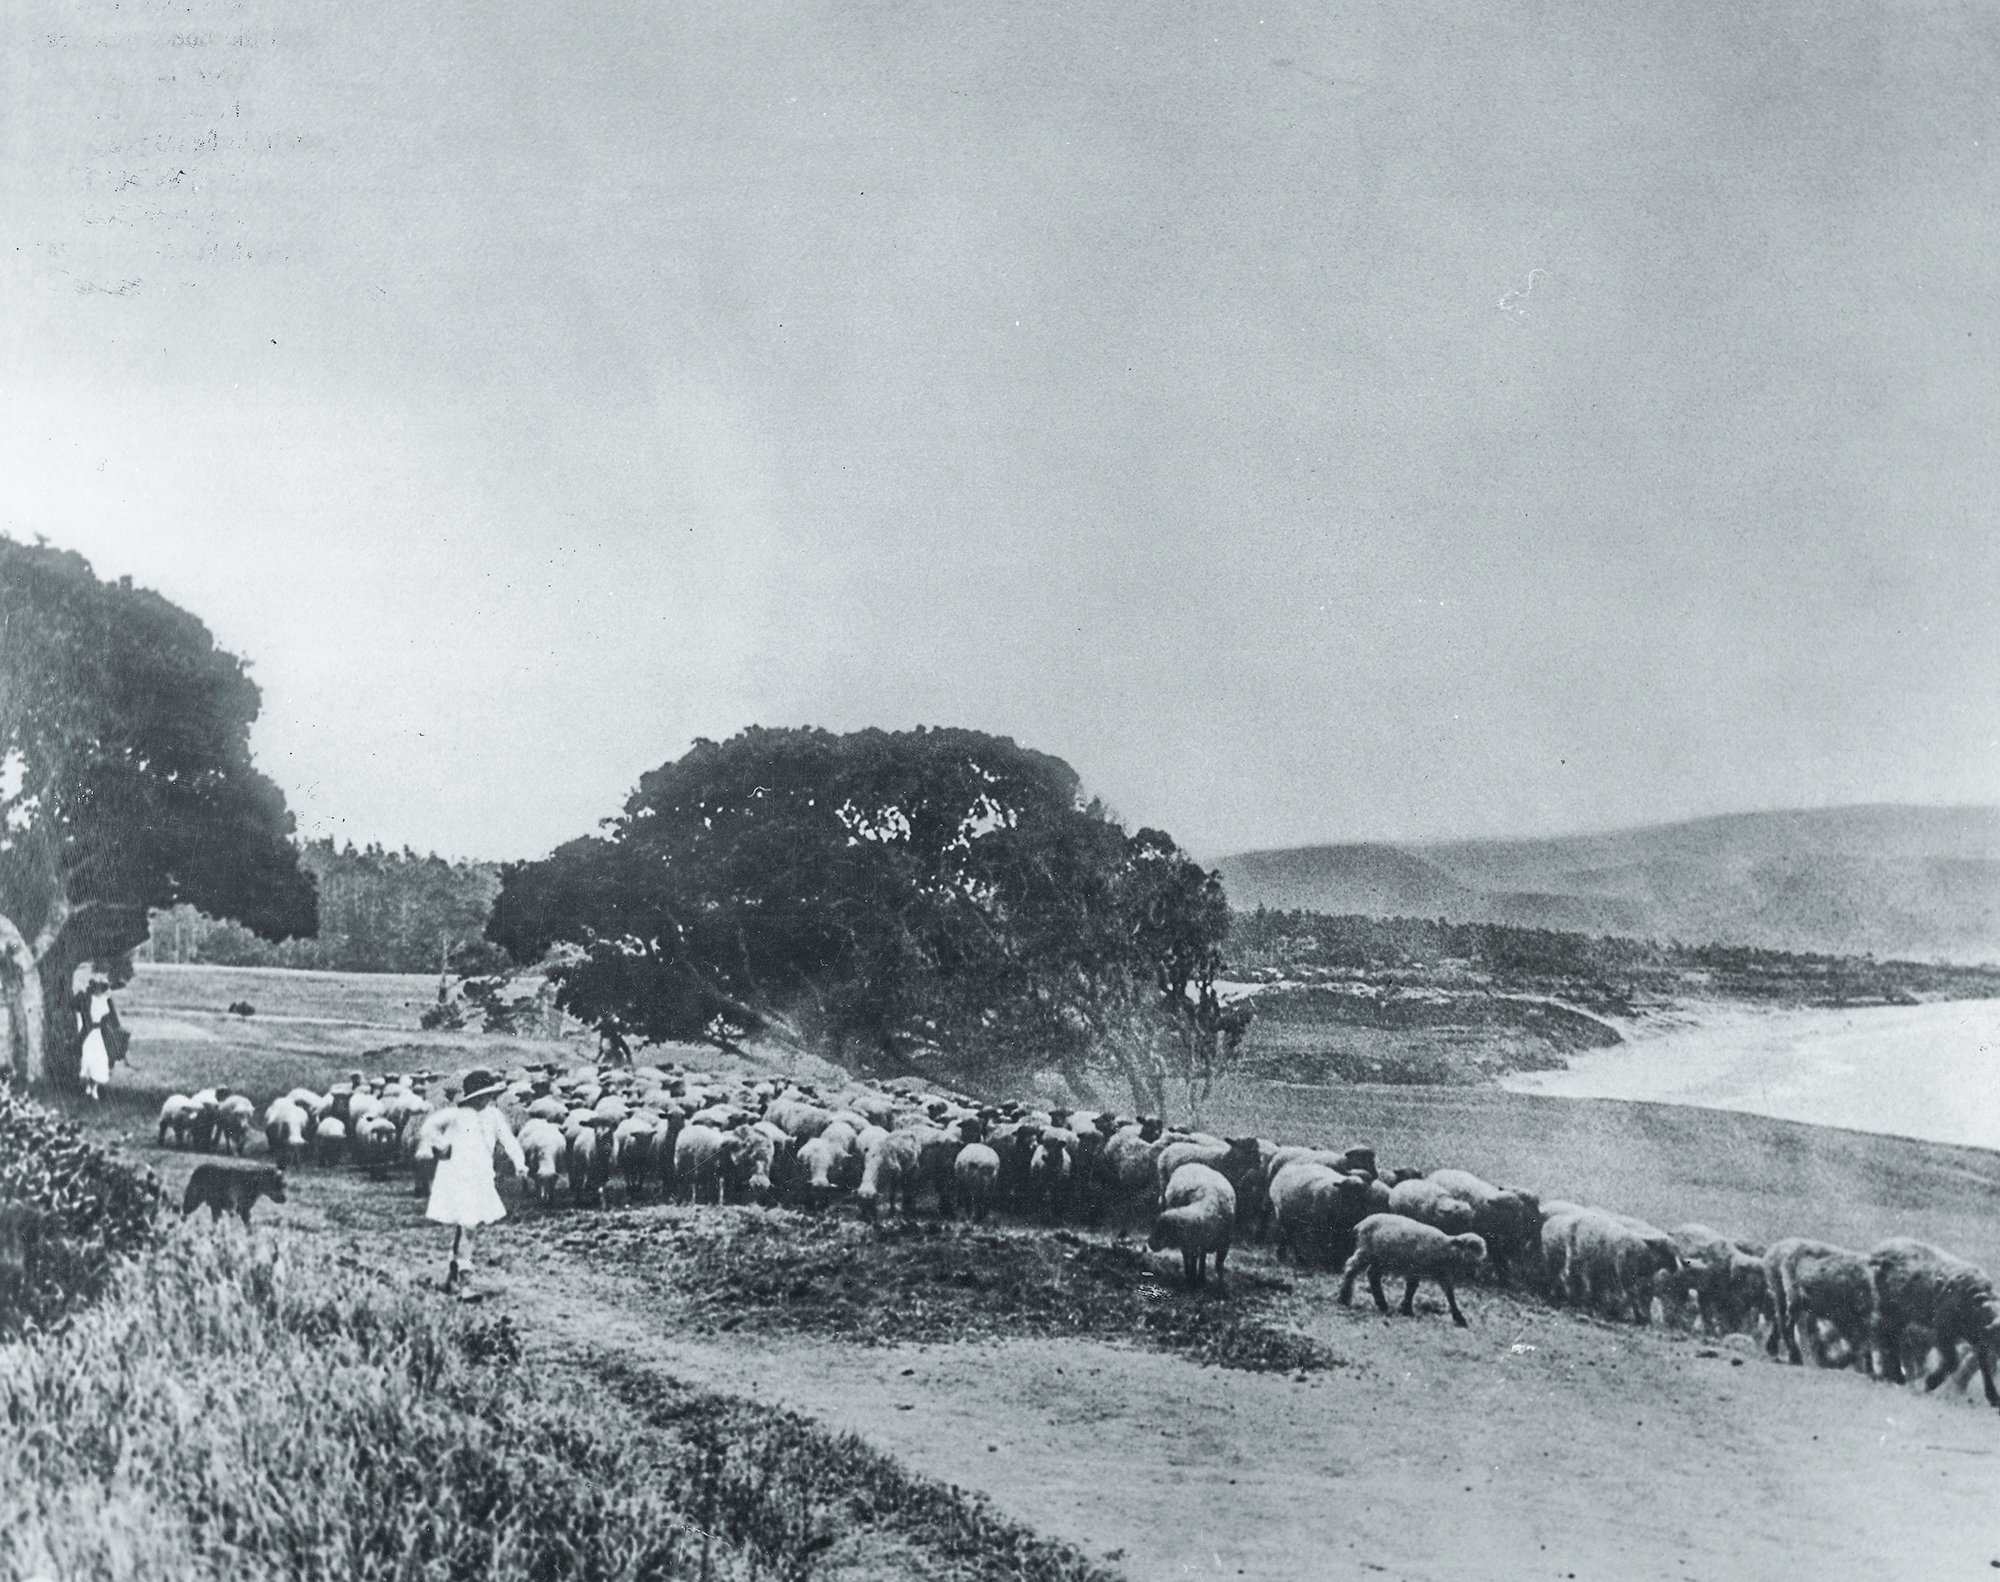 Sheep on the 14th hole at Pebble Beach